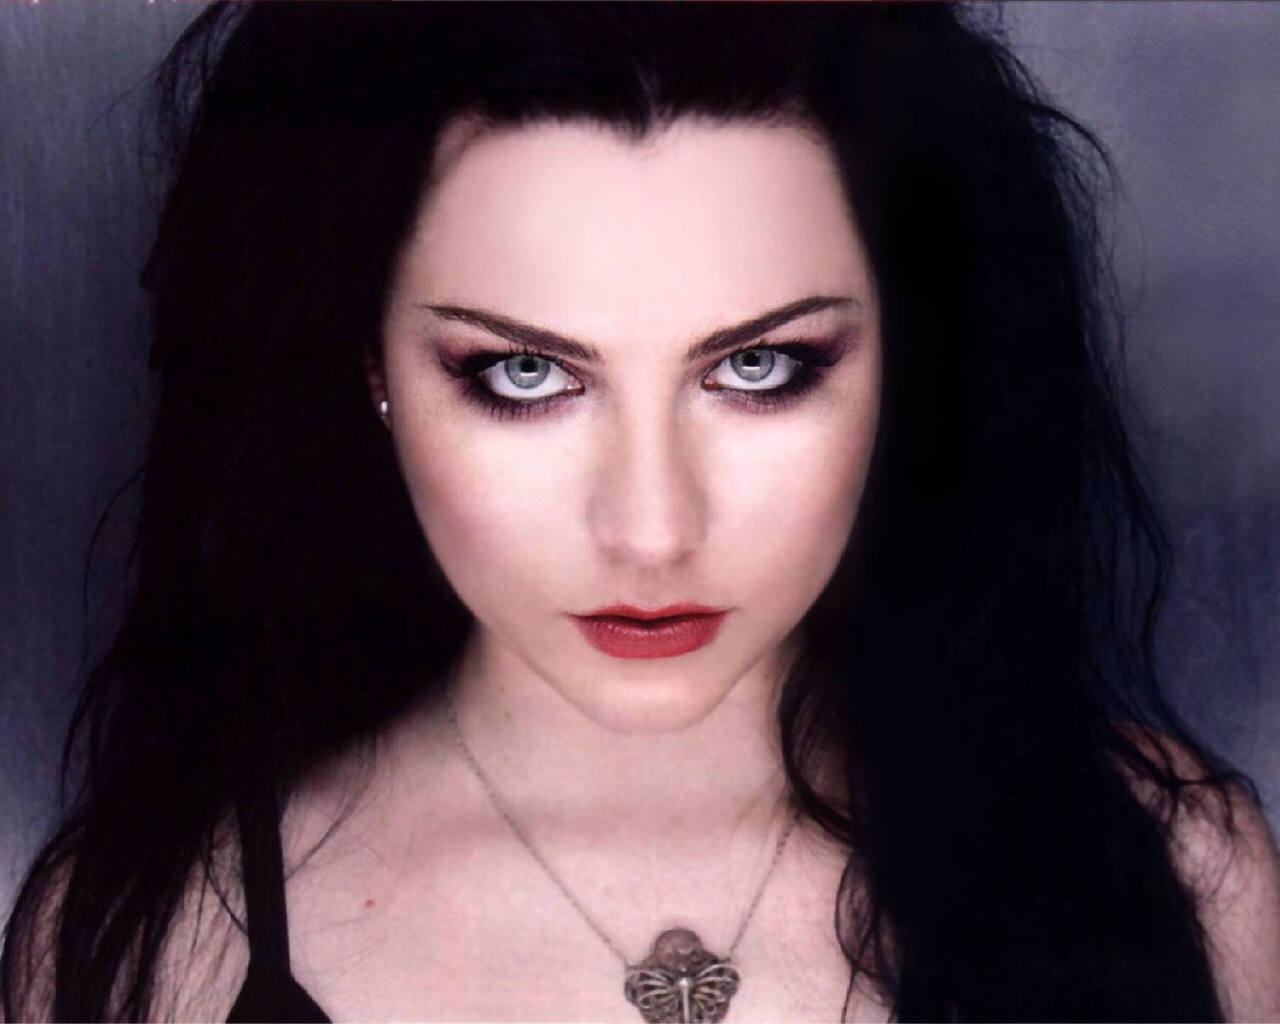 ... Evanescence Singer, Now Turned Solo Artist, Amy Lee | All Access Music